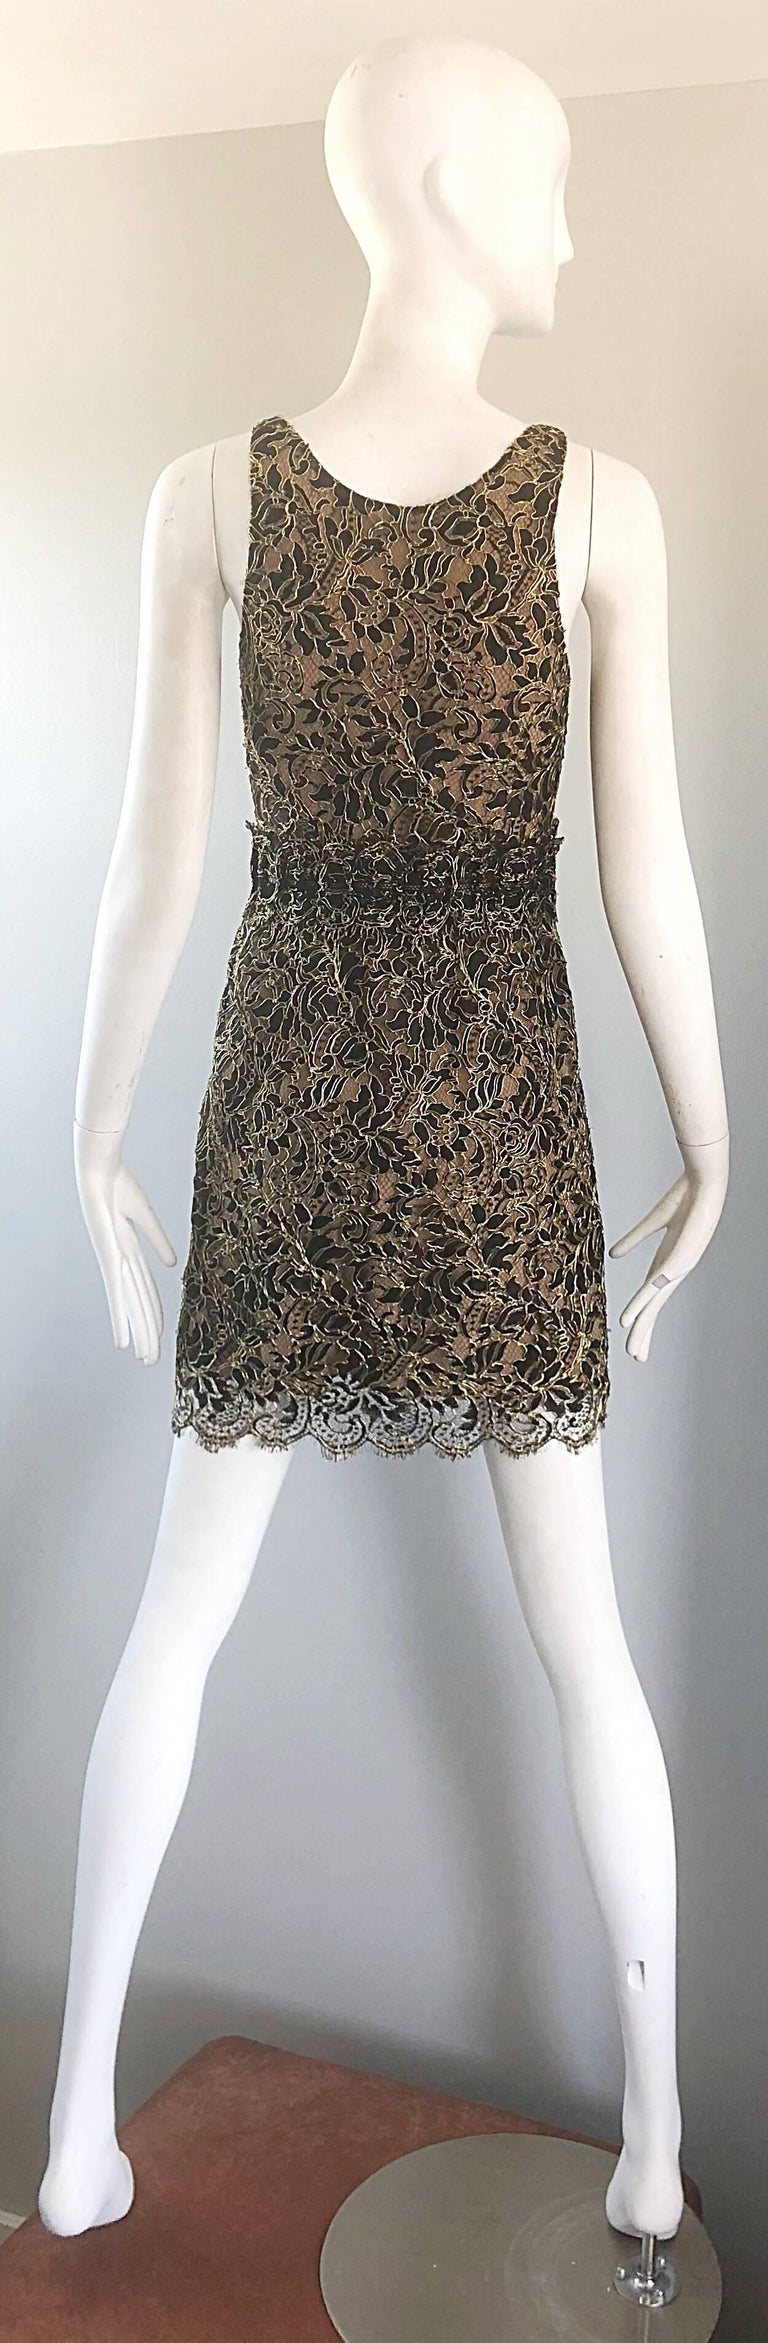 Balenciaga by Nicolas Ghesquiere Black + Gold + Nude Silk Chiffon Lace Dress For Sale 1